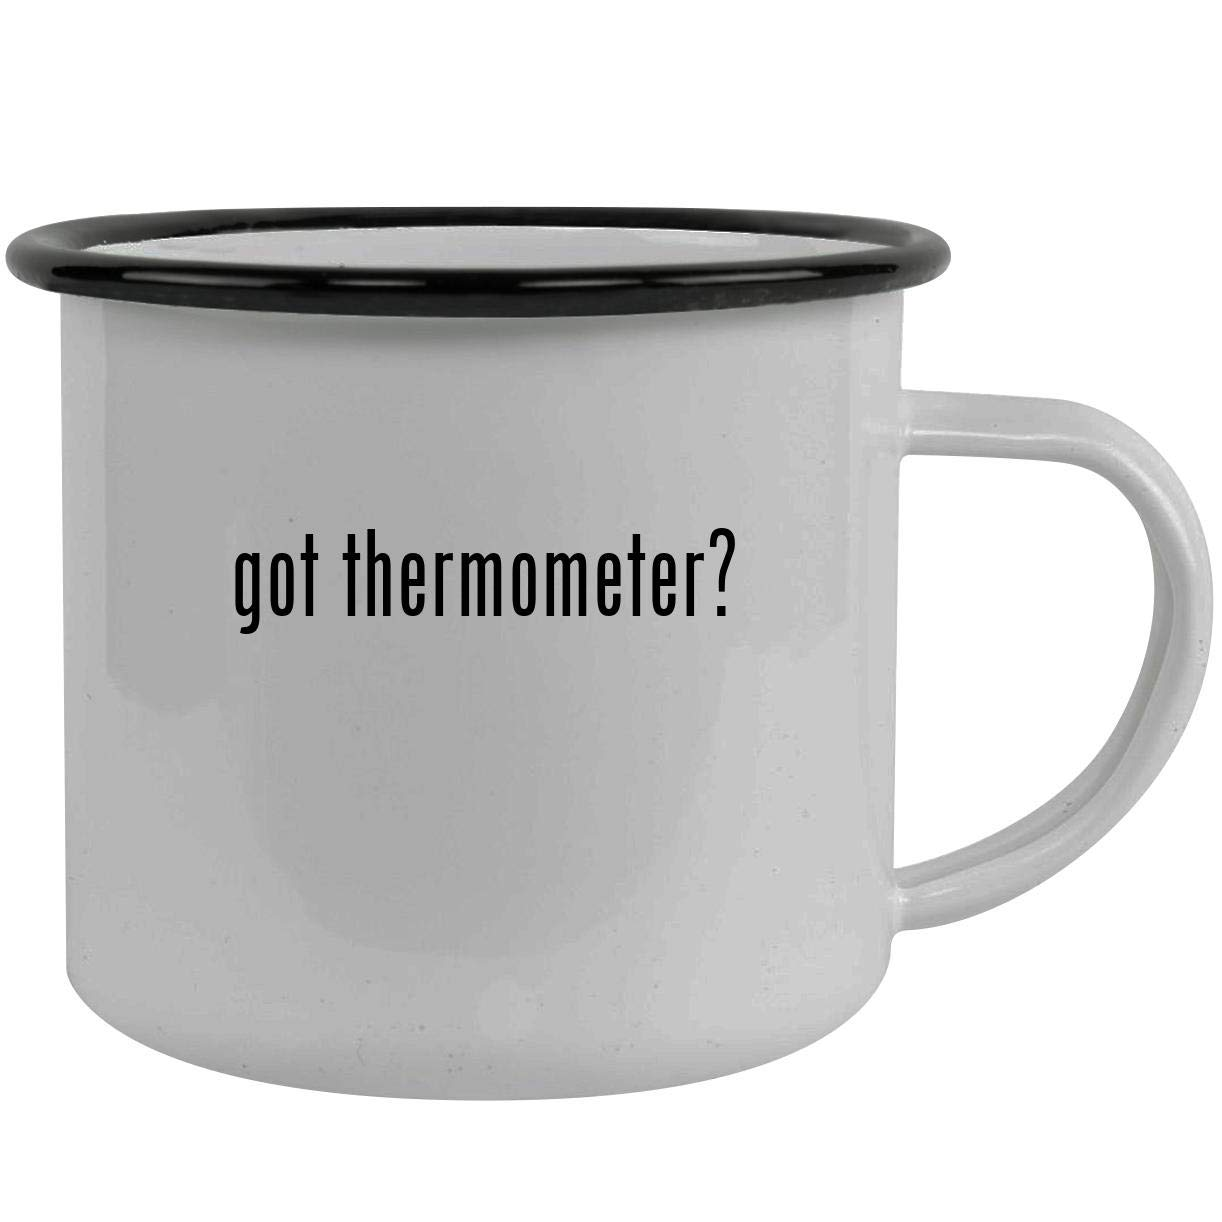 got thermometer? - Stainless Steel 12oz Camping Mug, Black